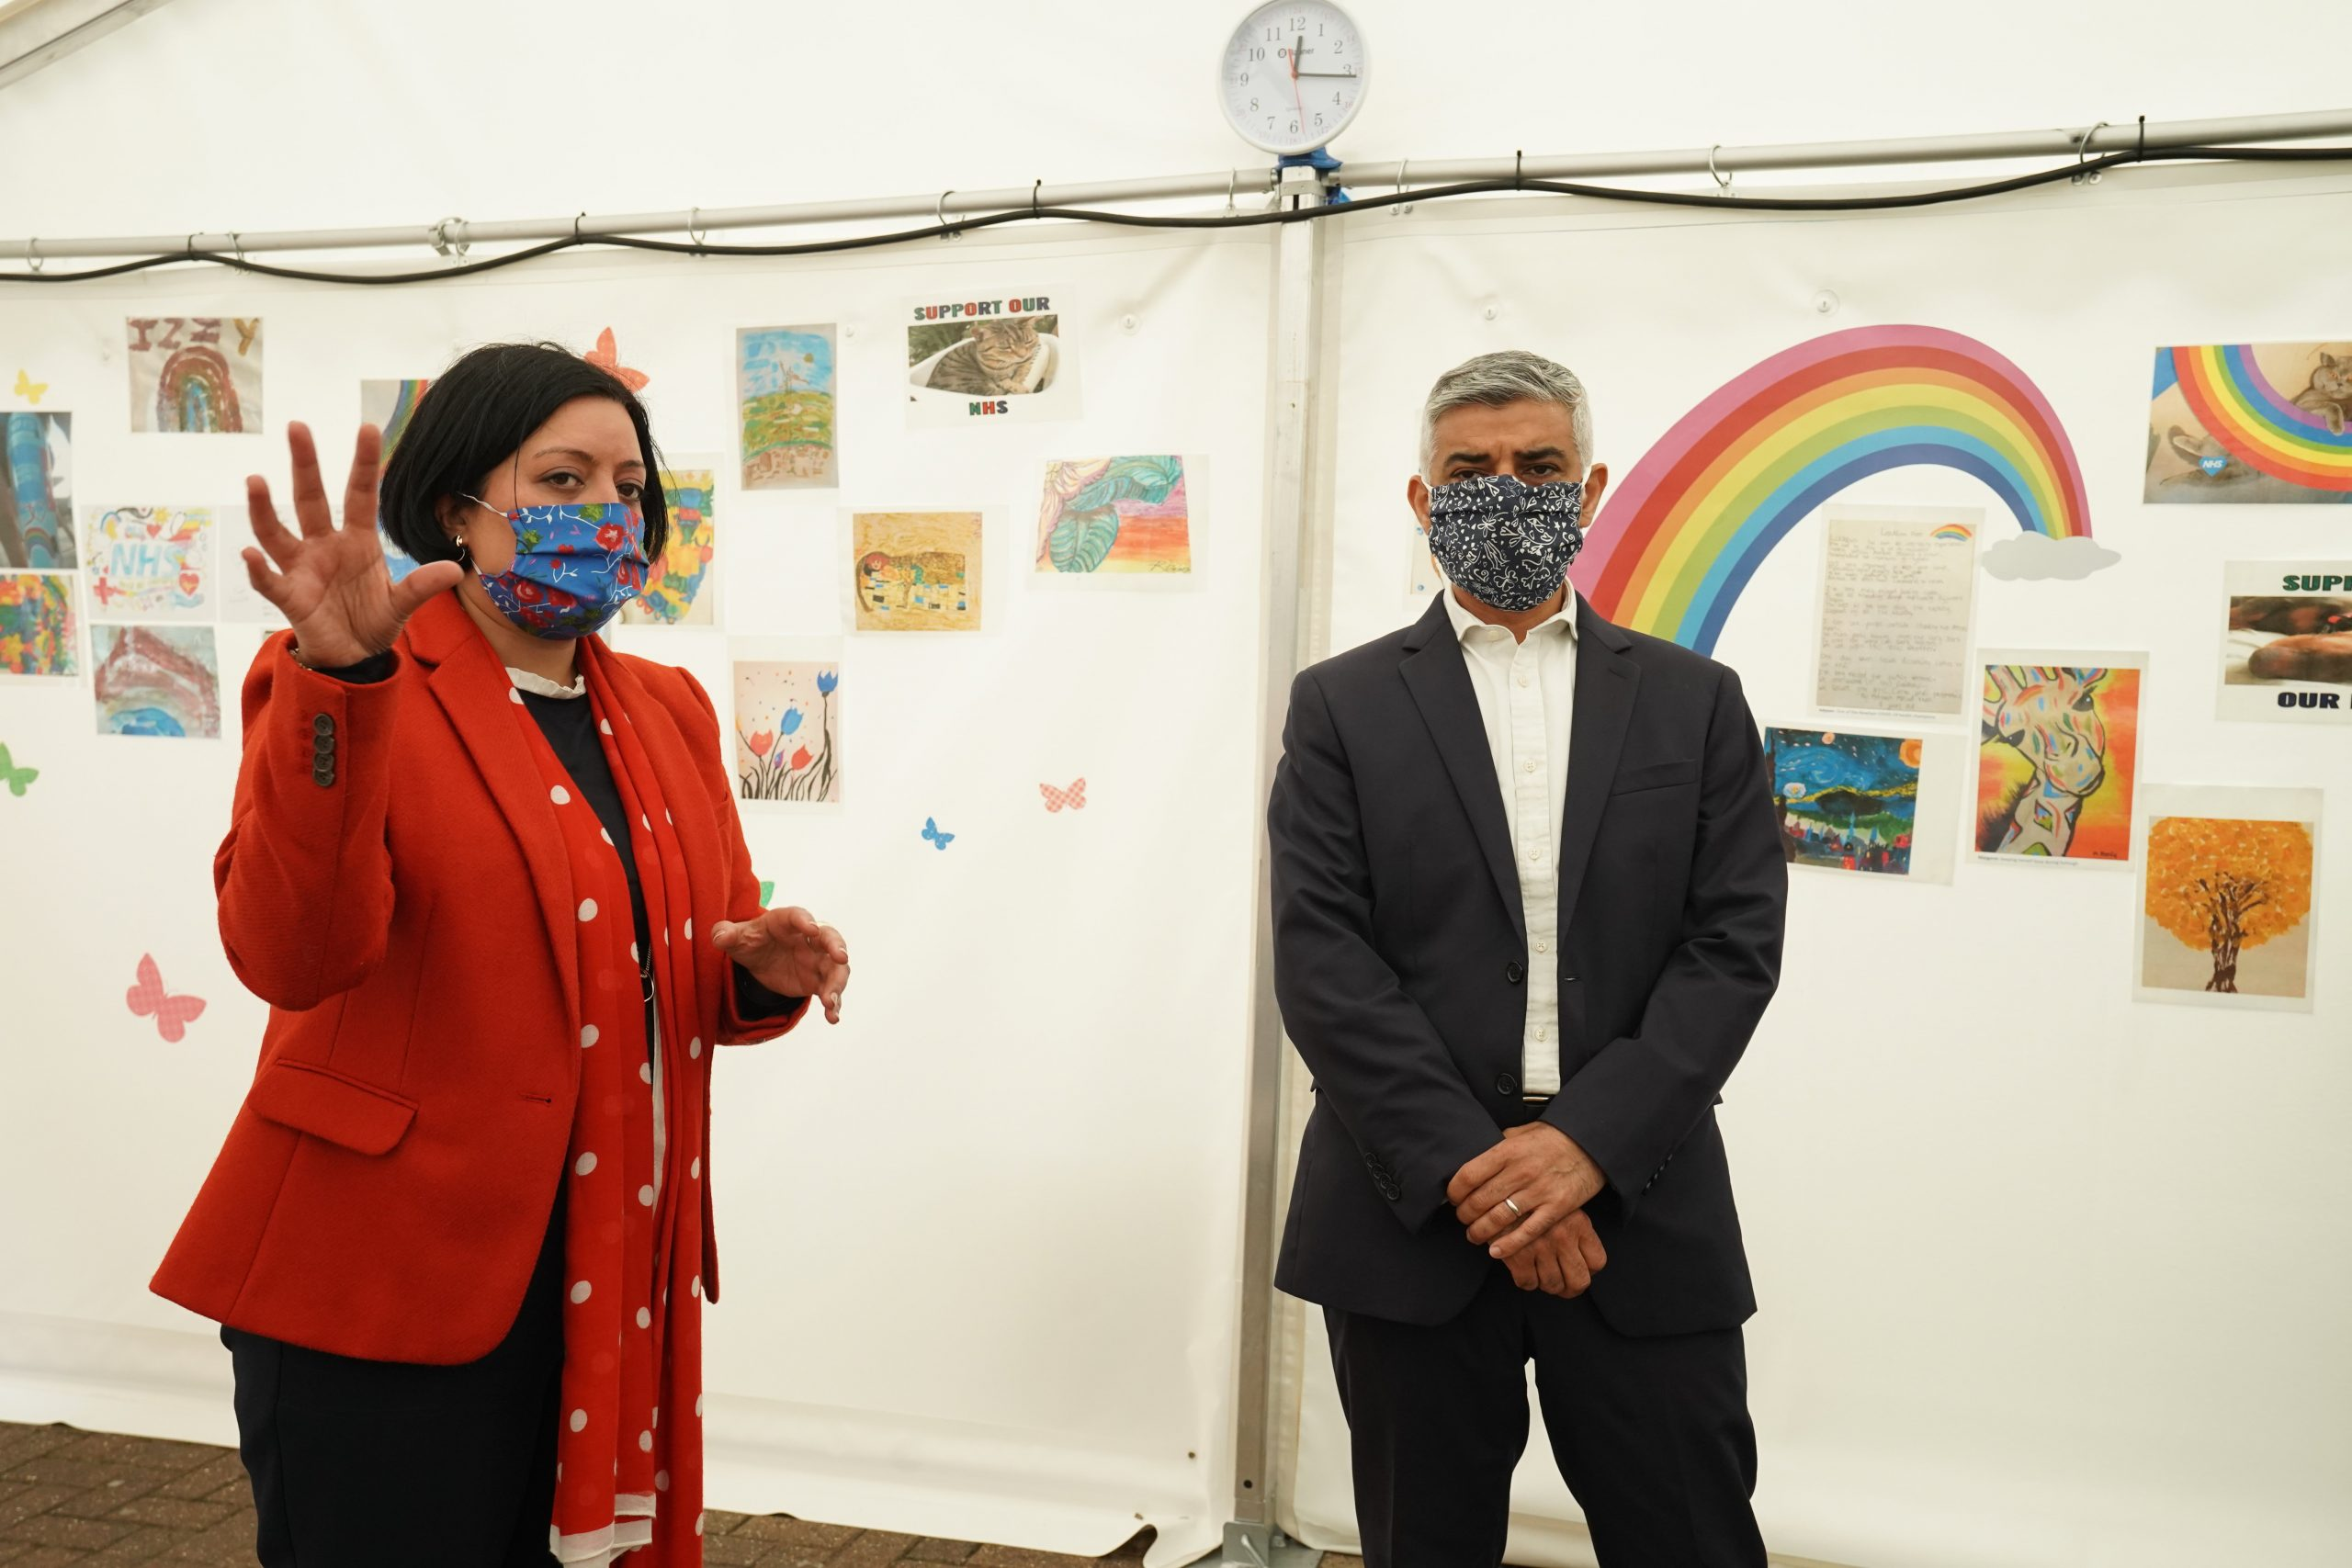 Newham mayor Rokhsana Fiaz and London mayor Sadiq Khan promoted the test and trace app last week during a visit to Newham's walk-in coronavirus test centre in East Ham